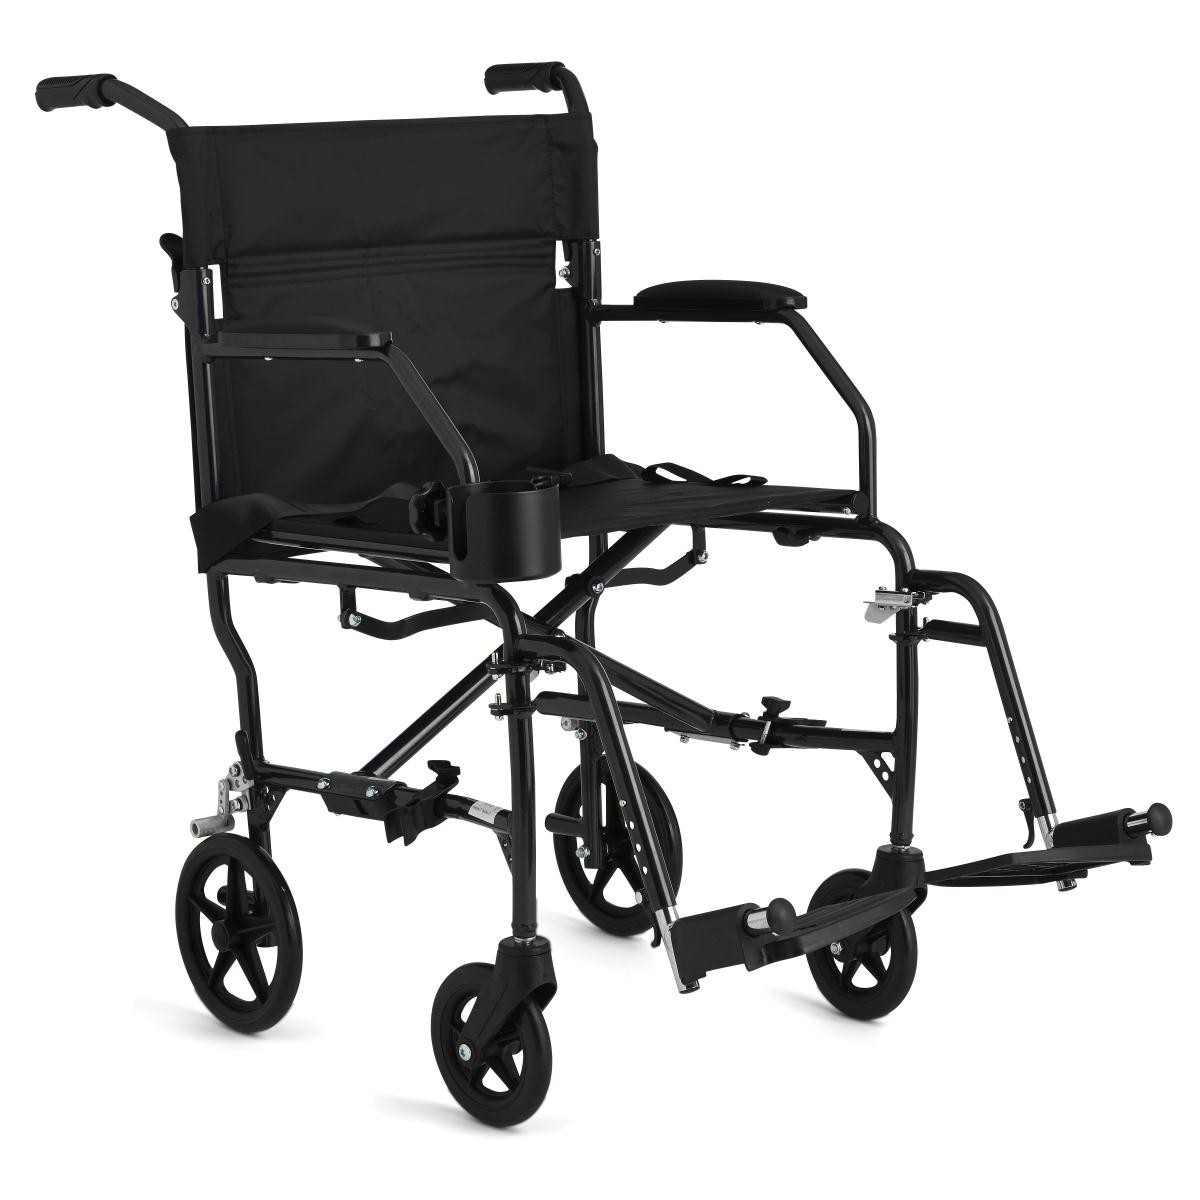 Black Medline Ultralight Transport Wheelchair with 4 wheels and 2 footrests